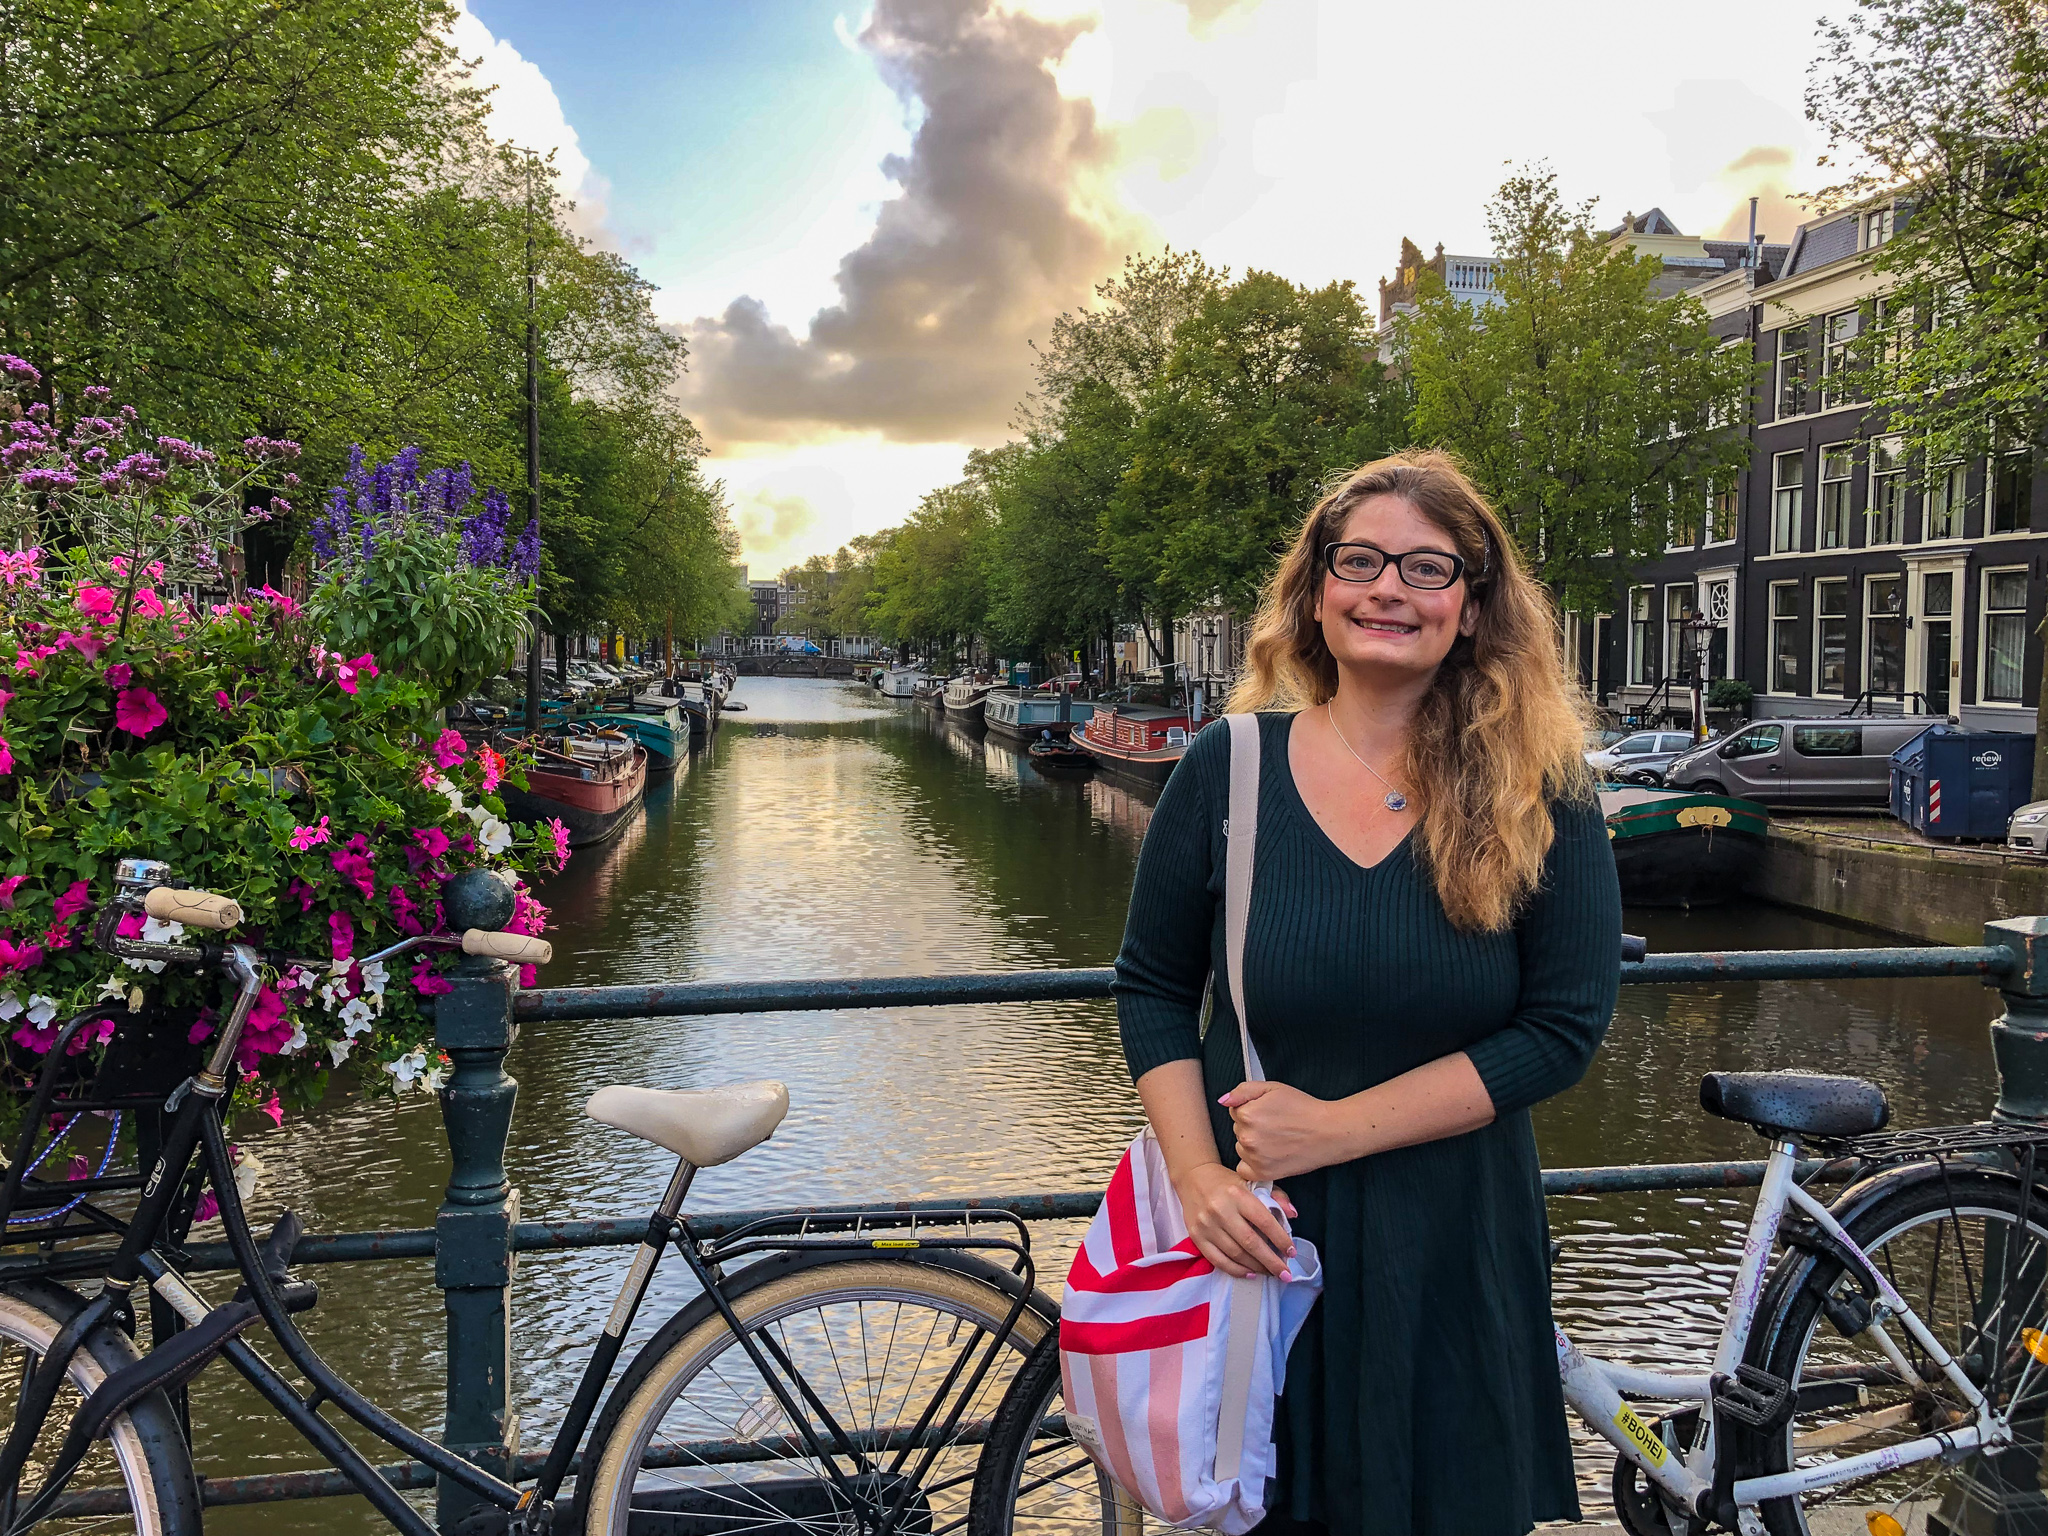 sightseeing in amsterdam in two days includes posing at canals